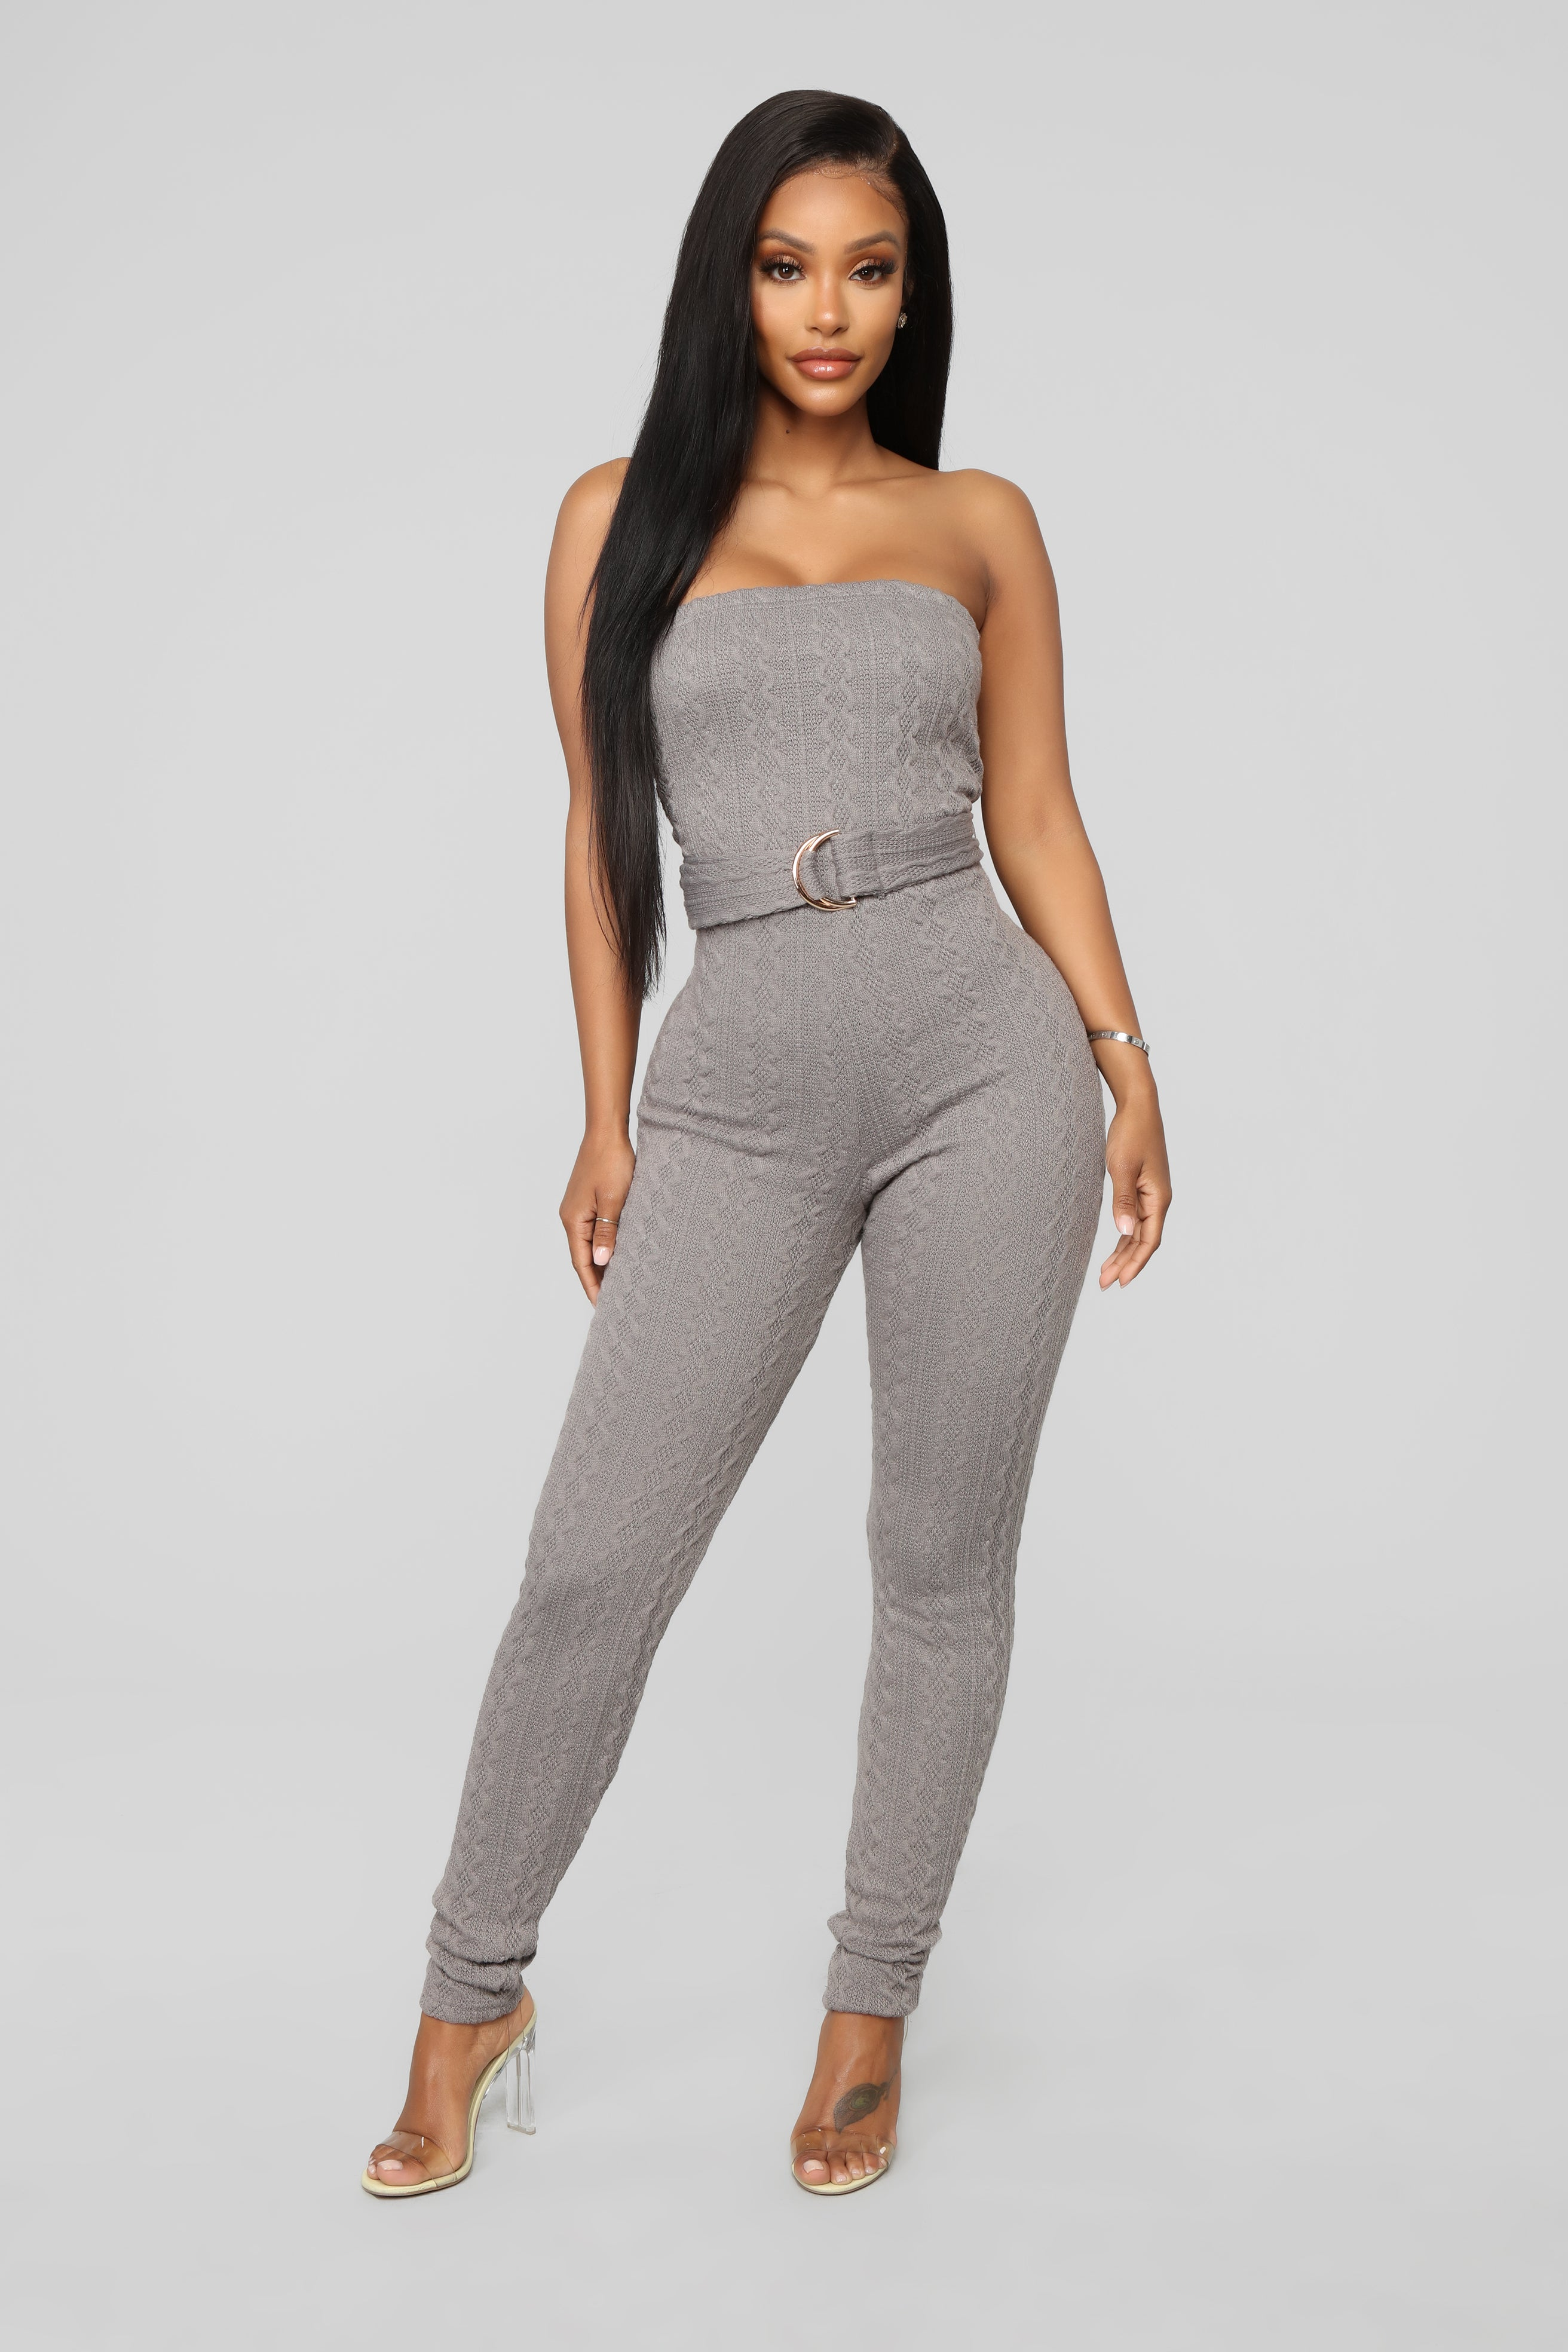 6595eac069c0 I Love Me A Hug Sweater Jumpsuit - Grey